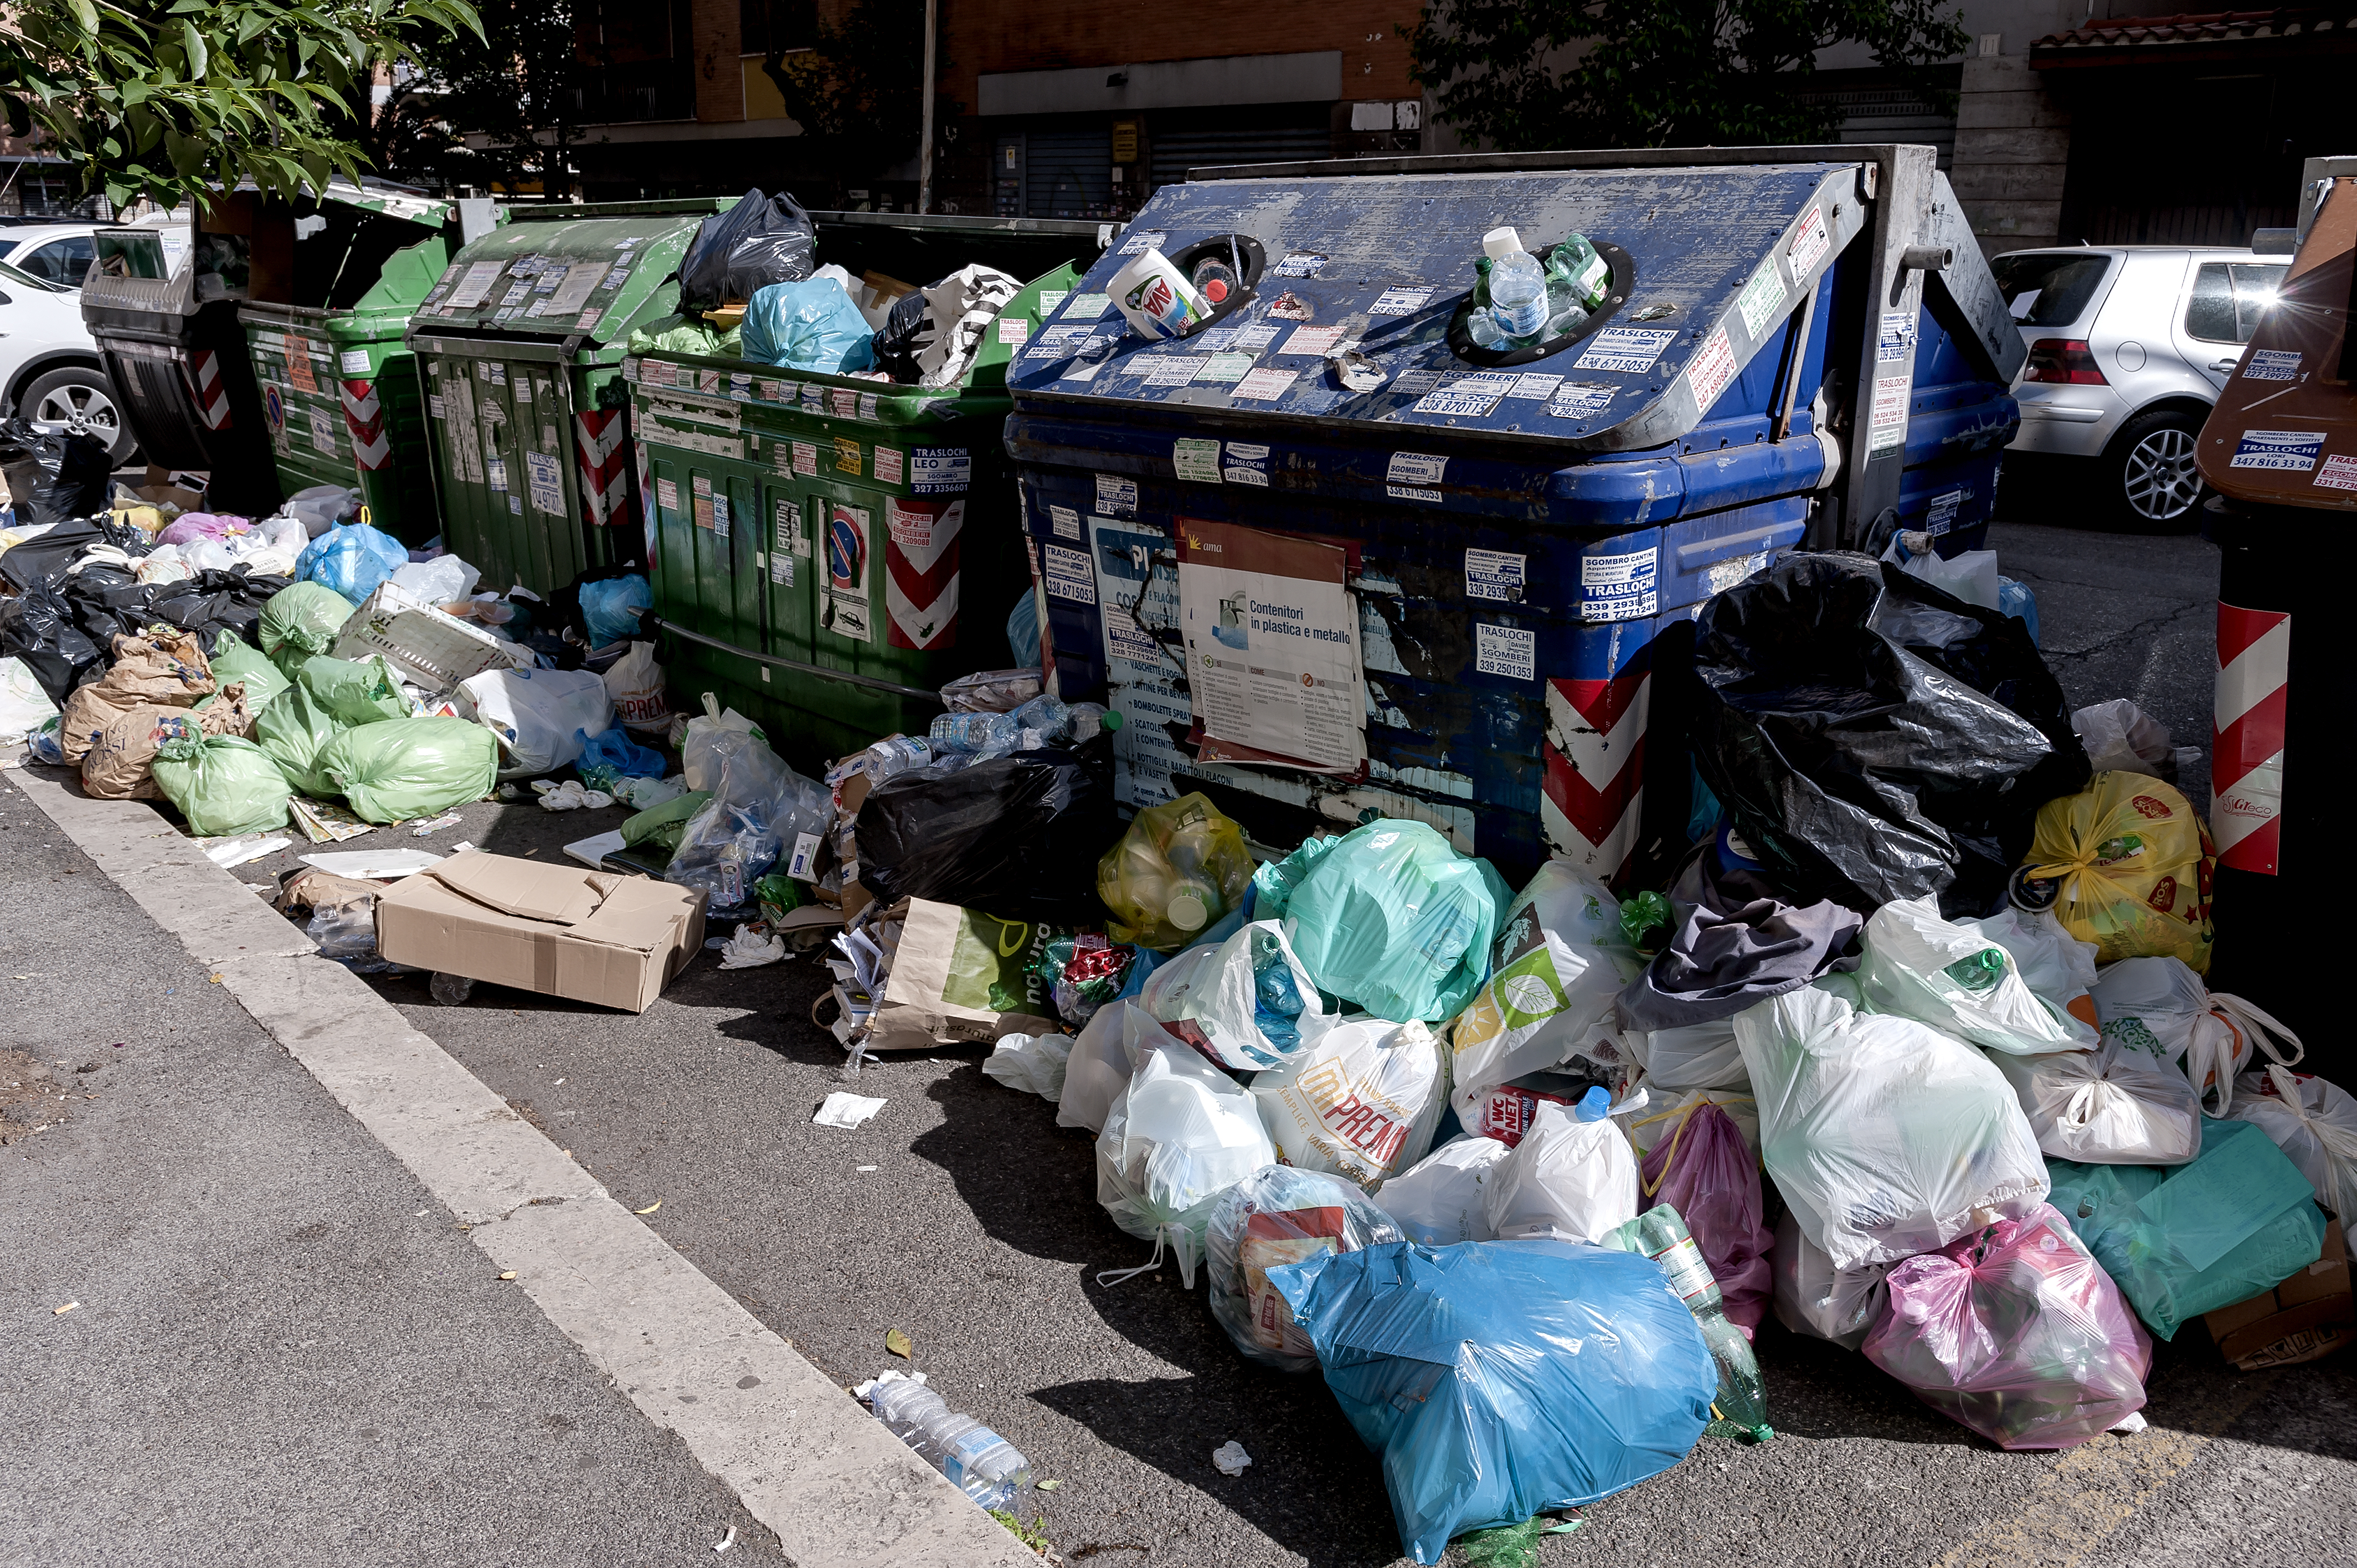 Rome Continues To Suffer From Problems with Refuse Collection